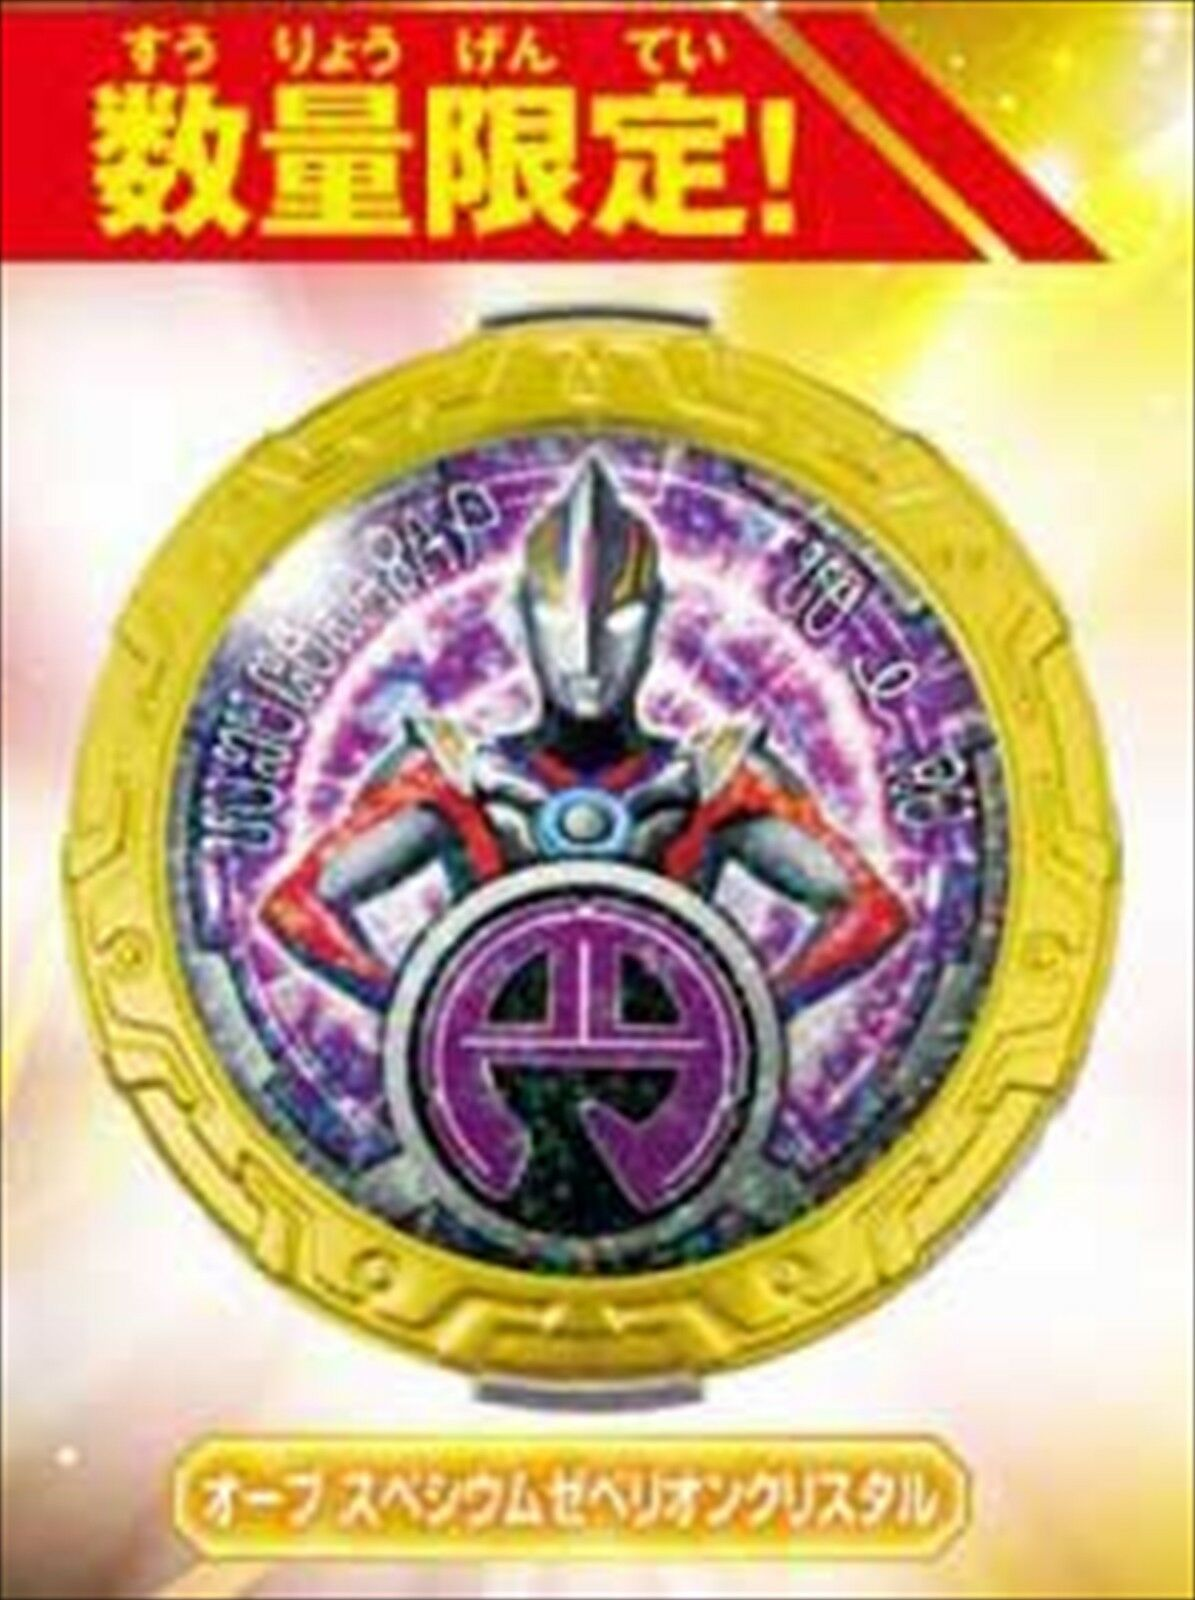 BANDAI ULTRAMAN R/B Campaign Limited Gold R/B Orb Spesium Zeperion Crystal